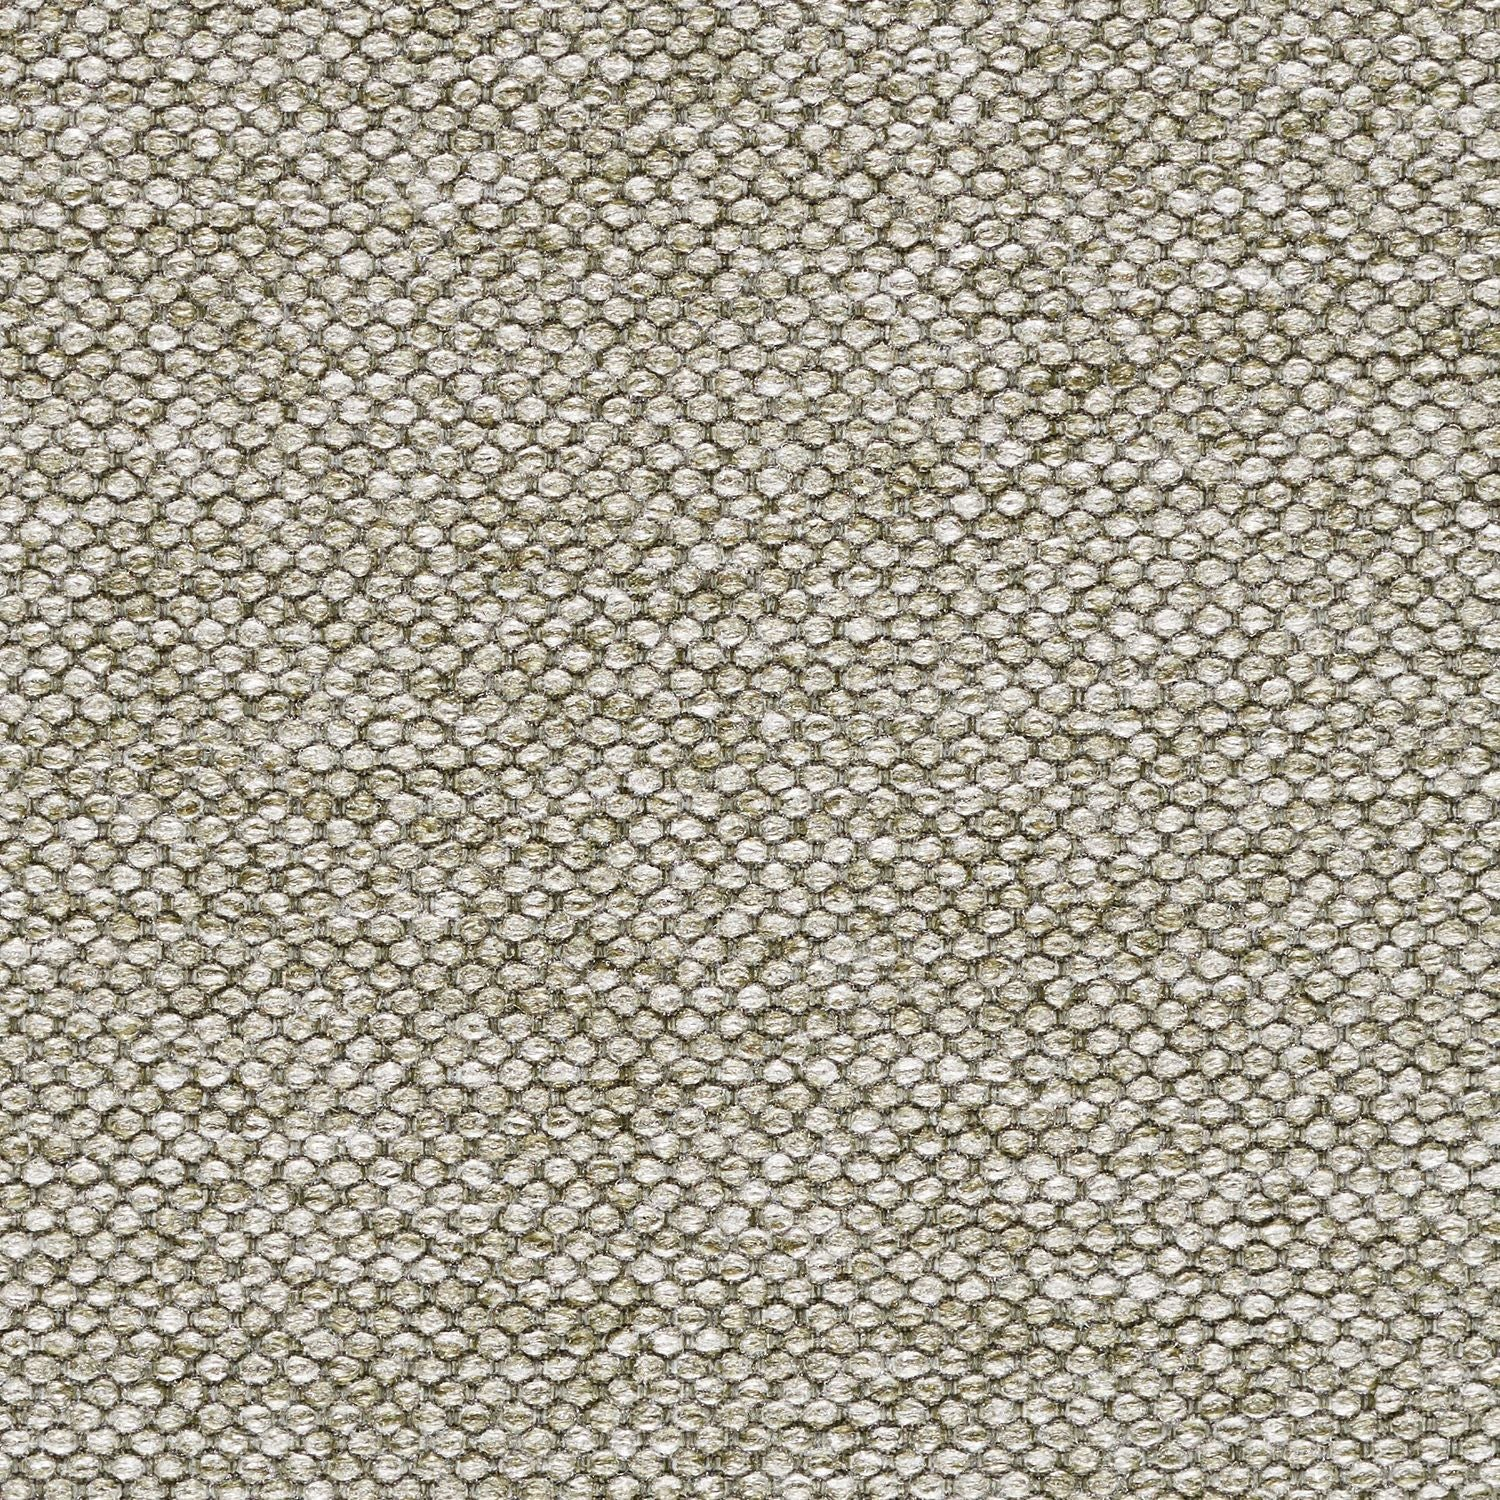 Digi Tweed - Sagebrush Tweed - 4058 - 10